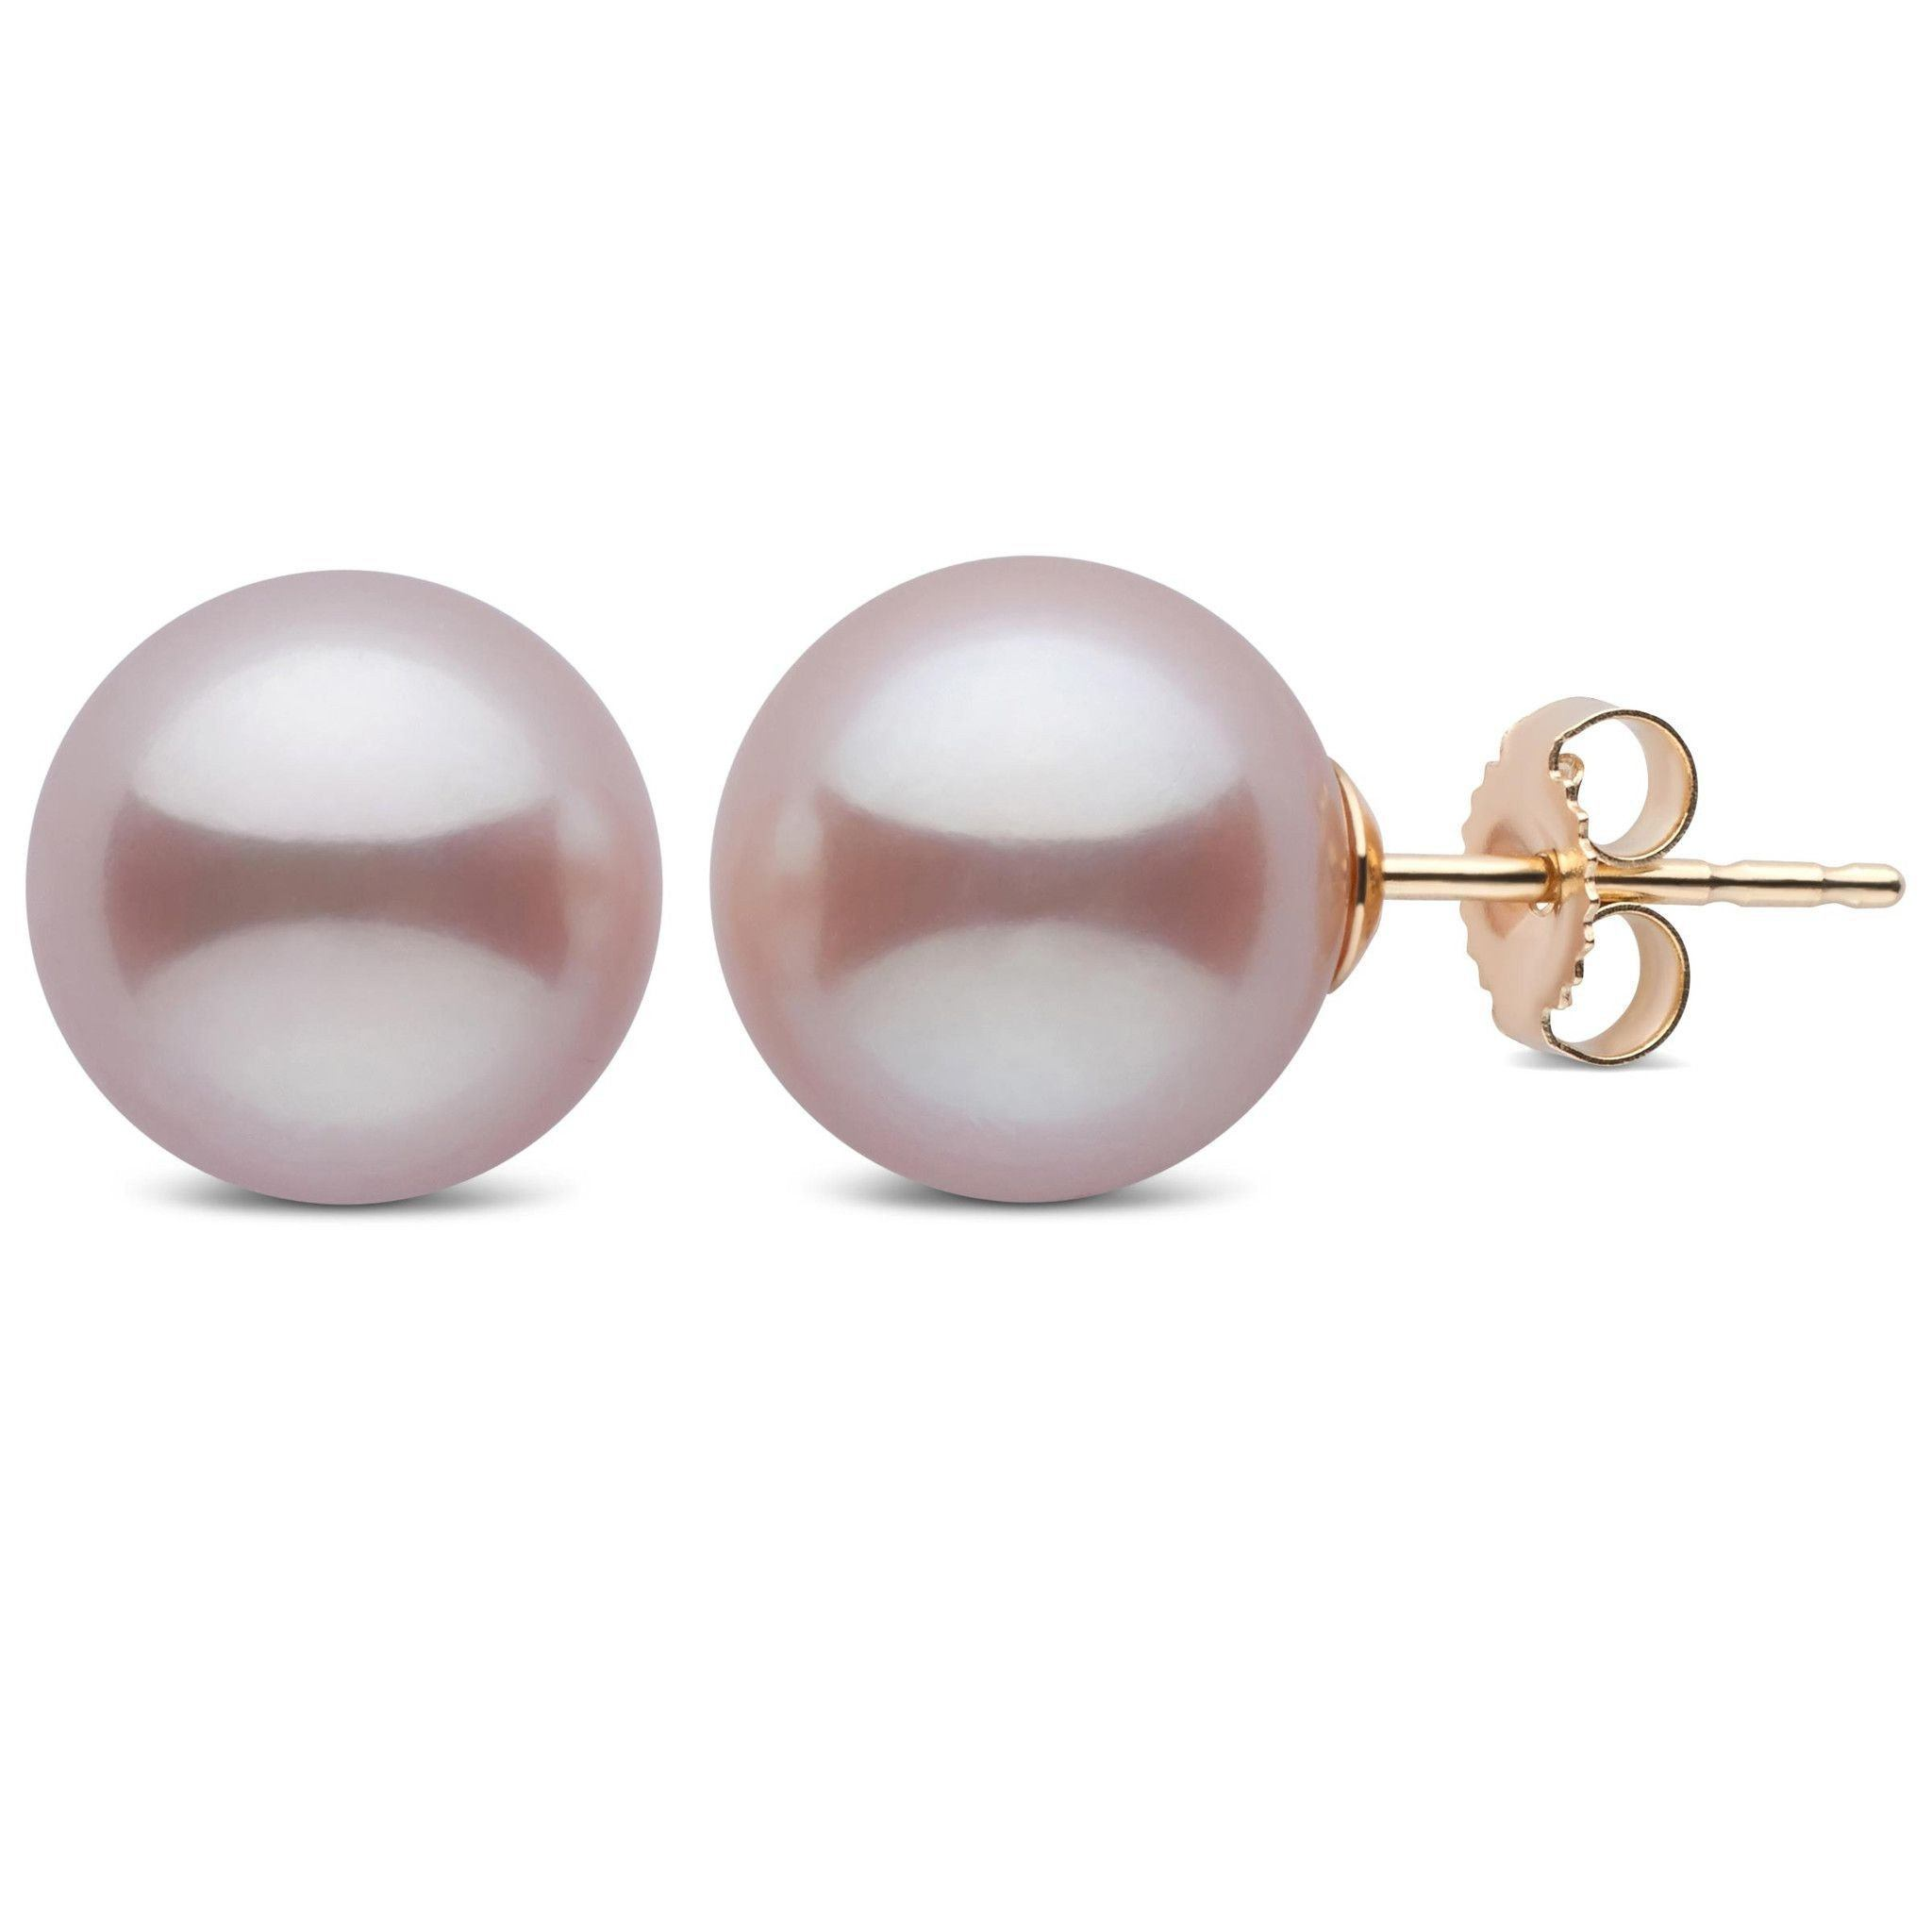 10.0-11.0 mm AAA Lavender Freshwater Pearl Stud Earrings